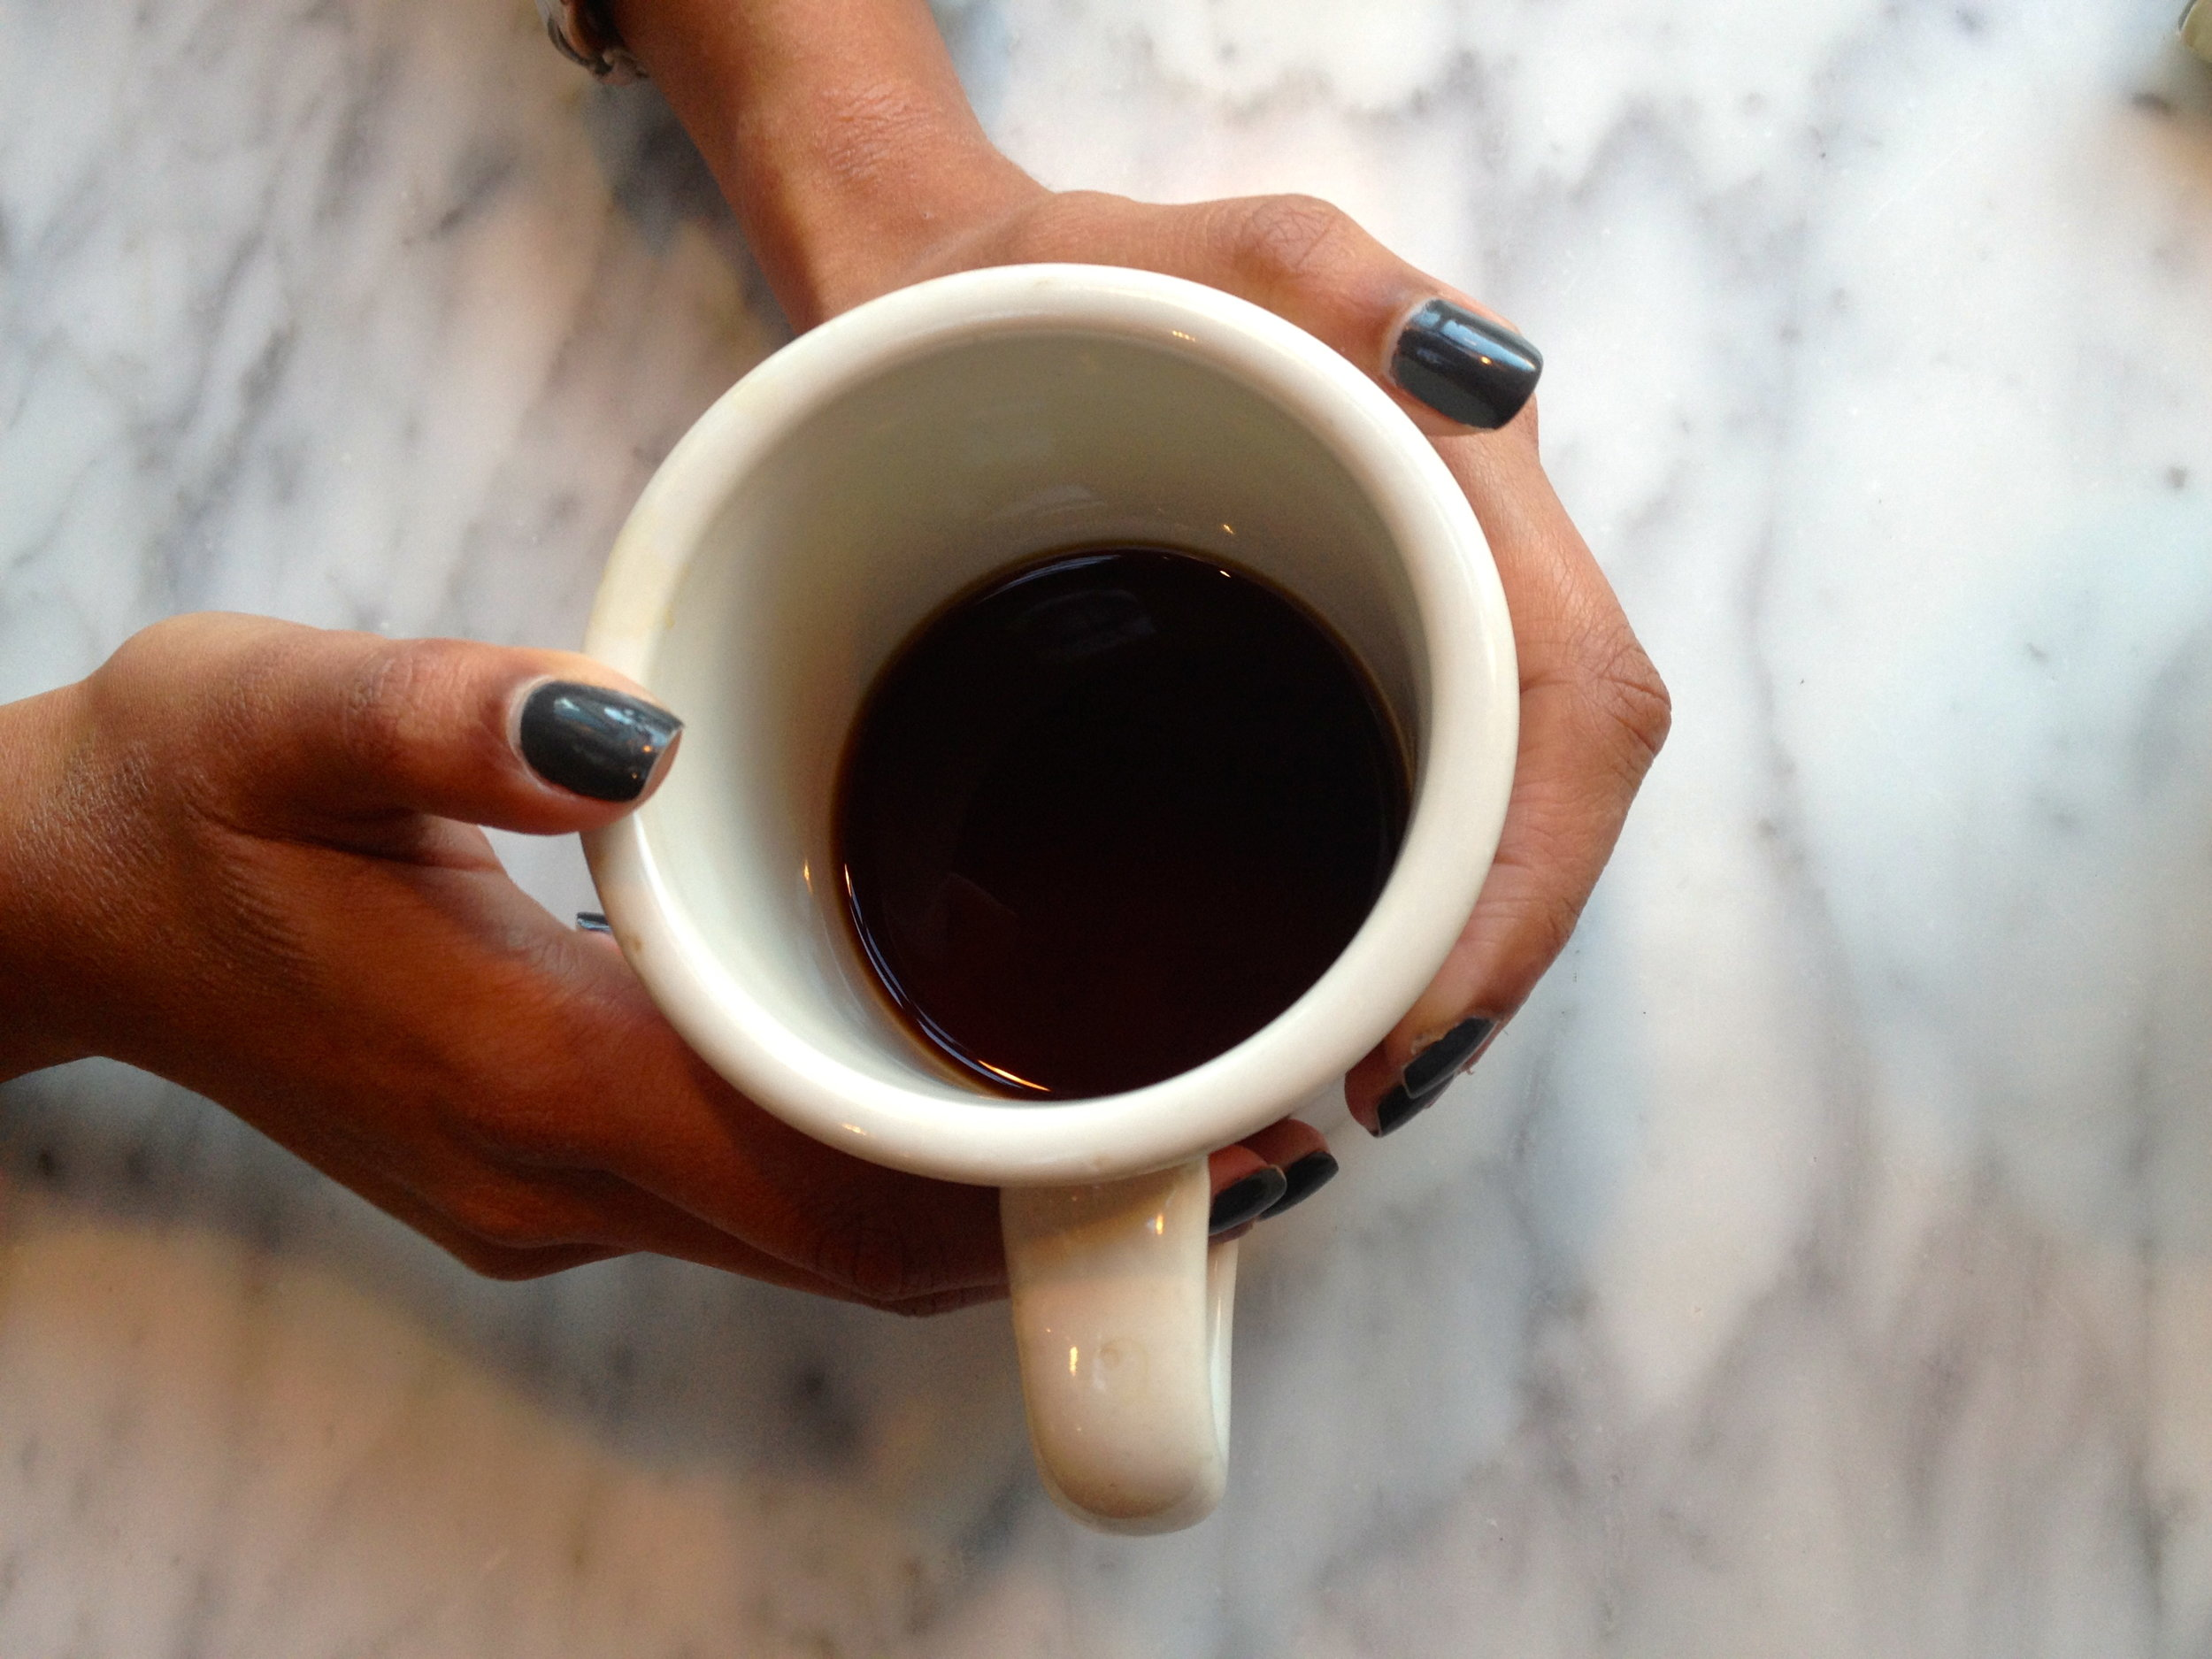 Starting the weekend off right with coffee + Shikha!